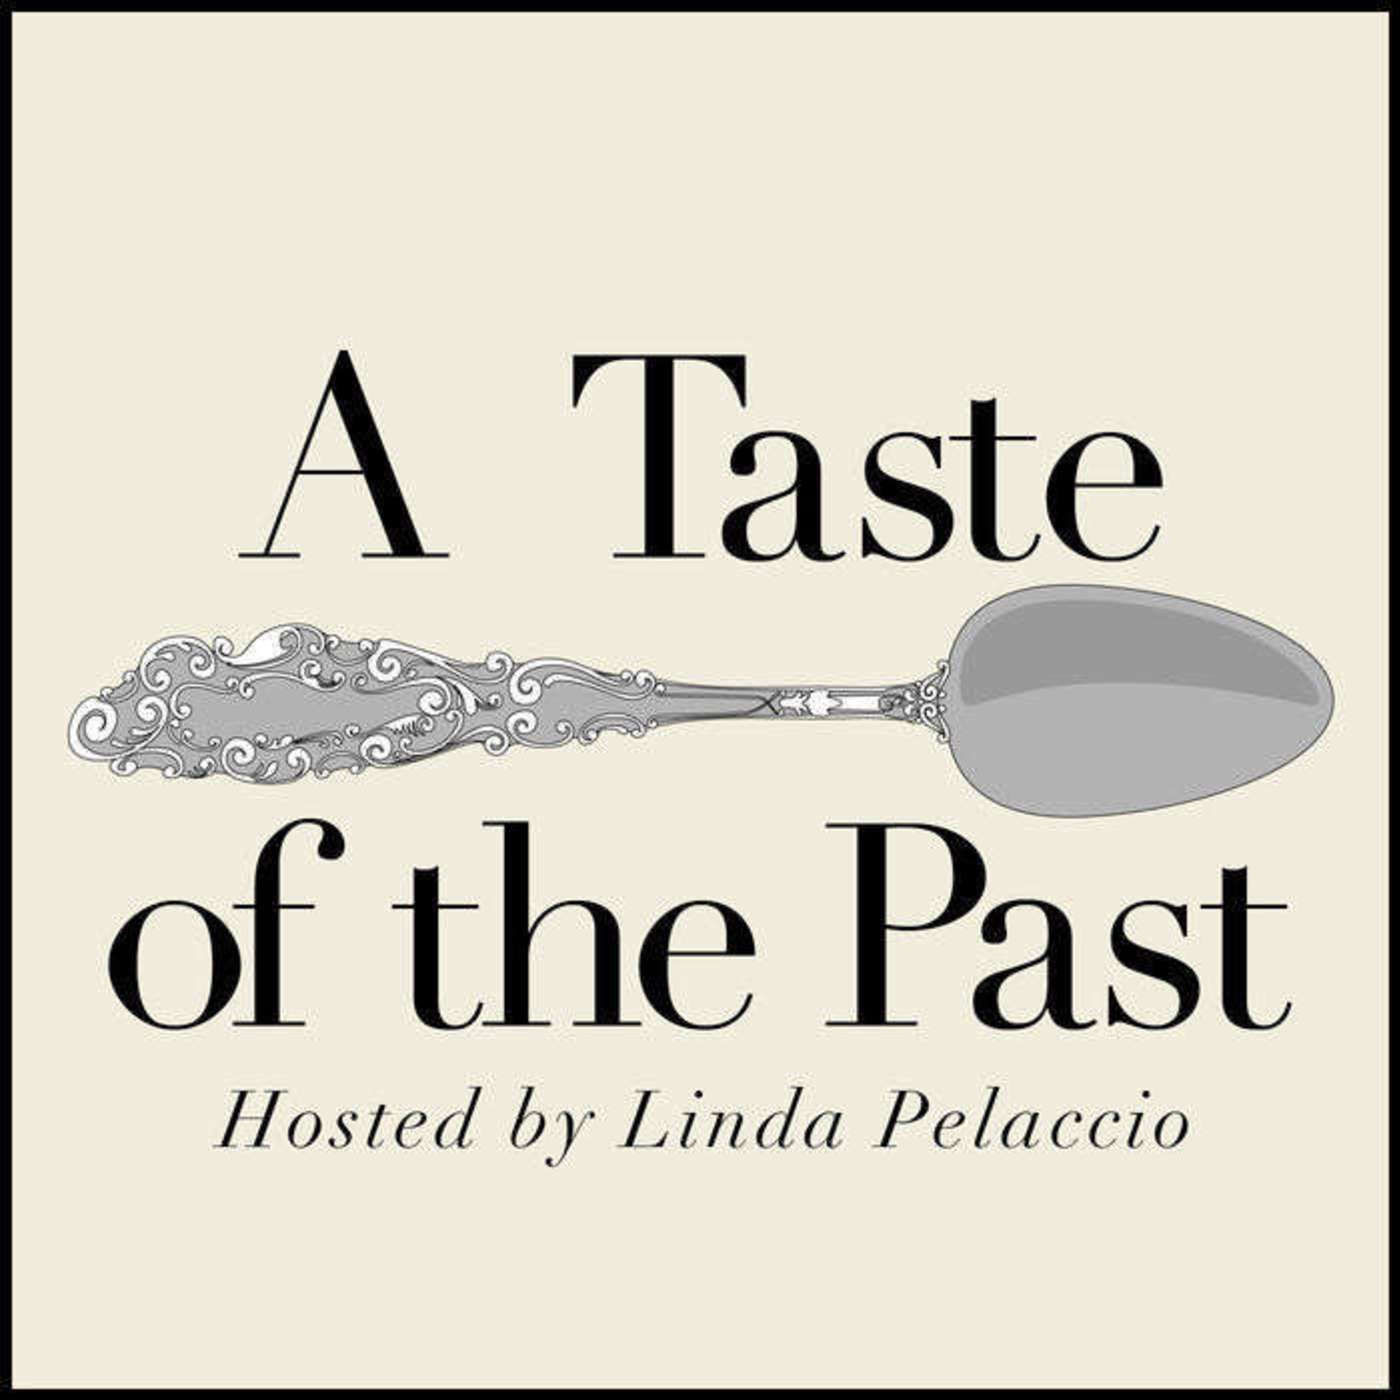 Episode 12: Maple Syrup